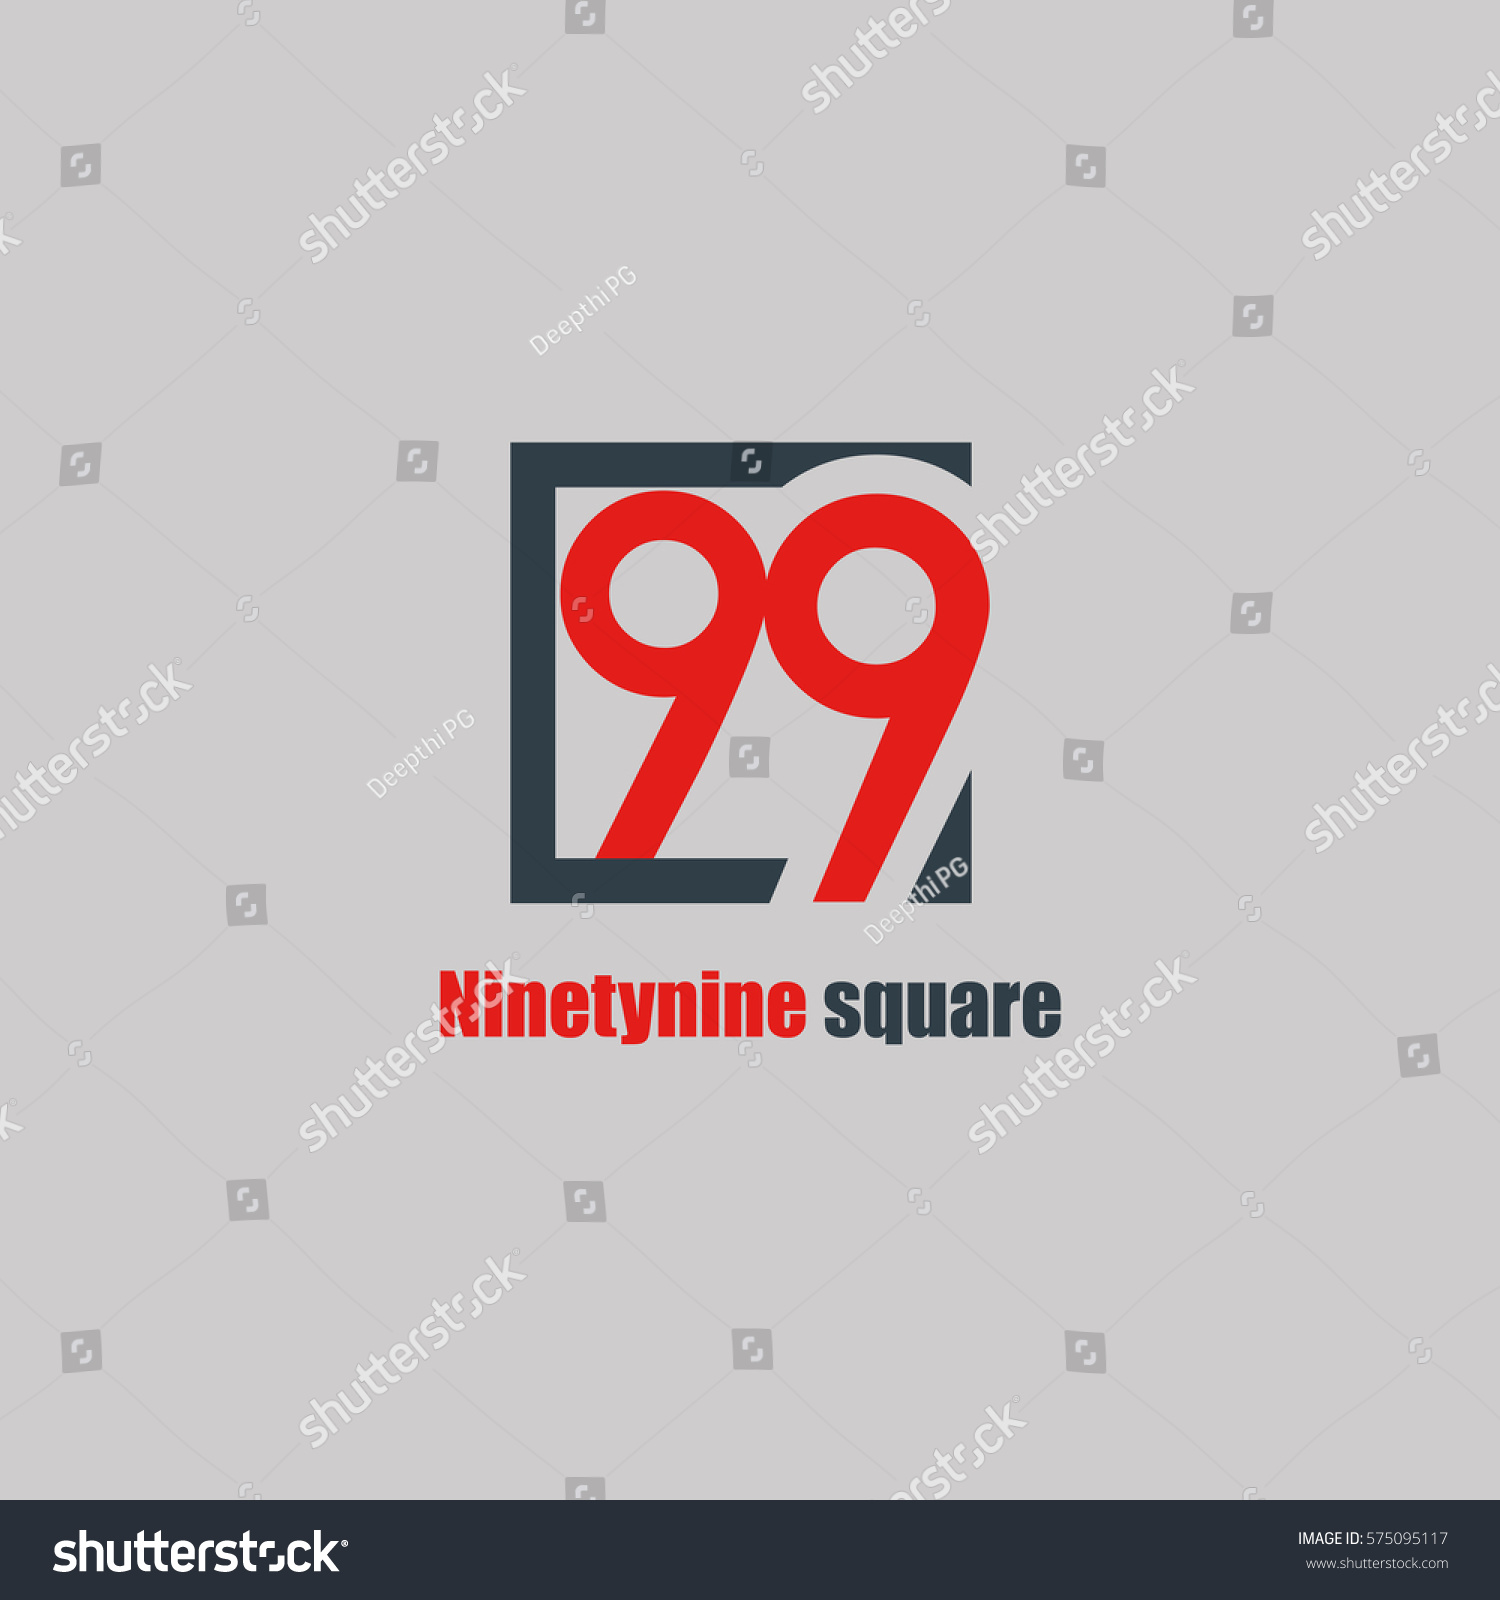 99 number logo design vector element stock vector for Blueprint number